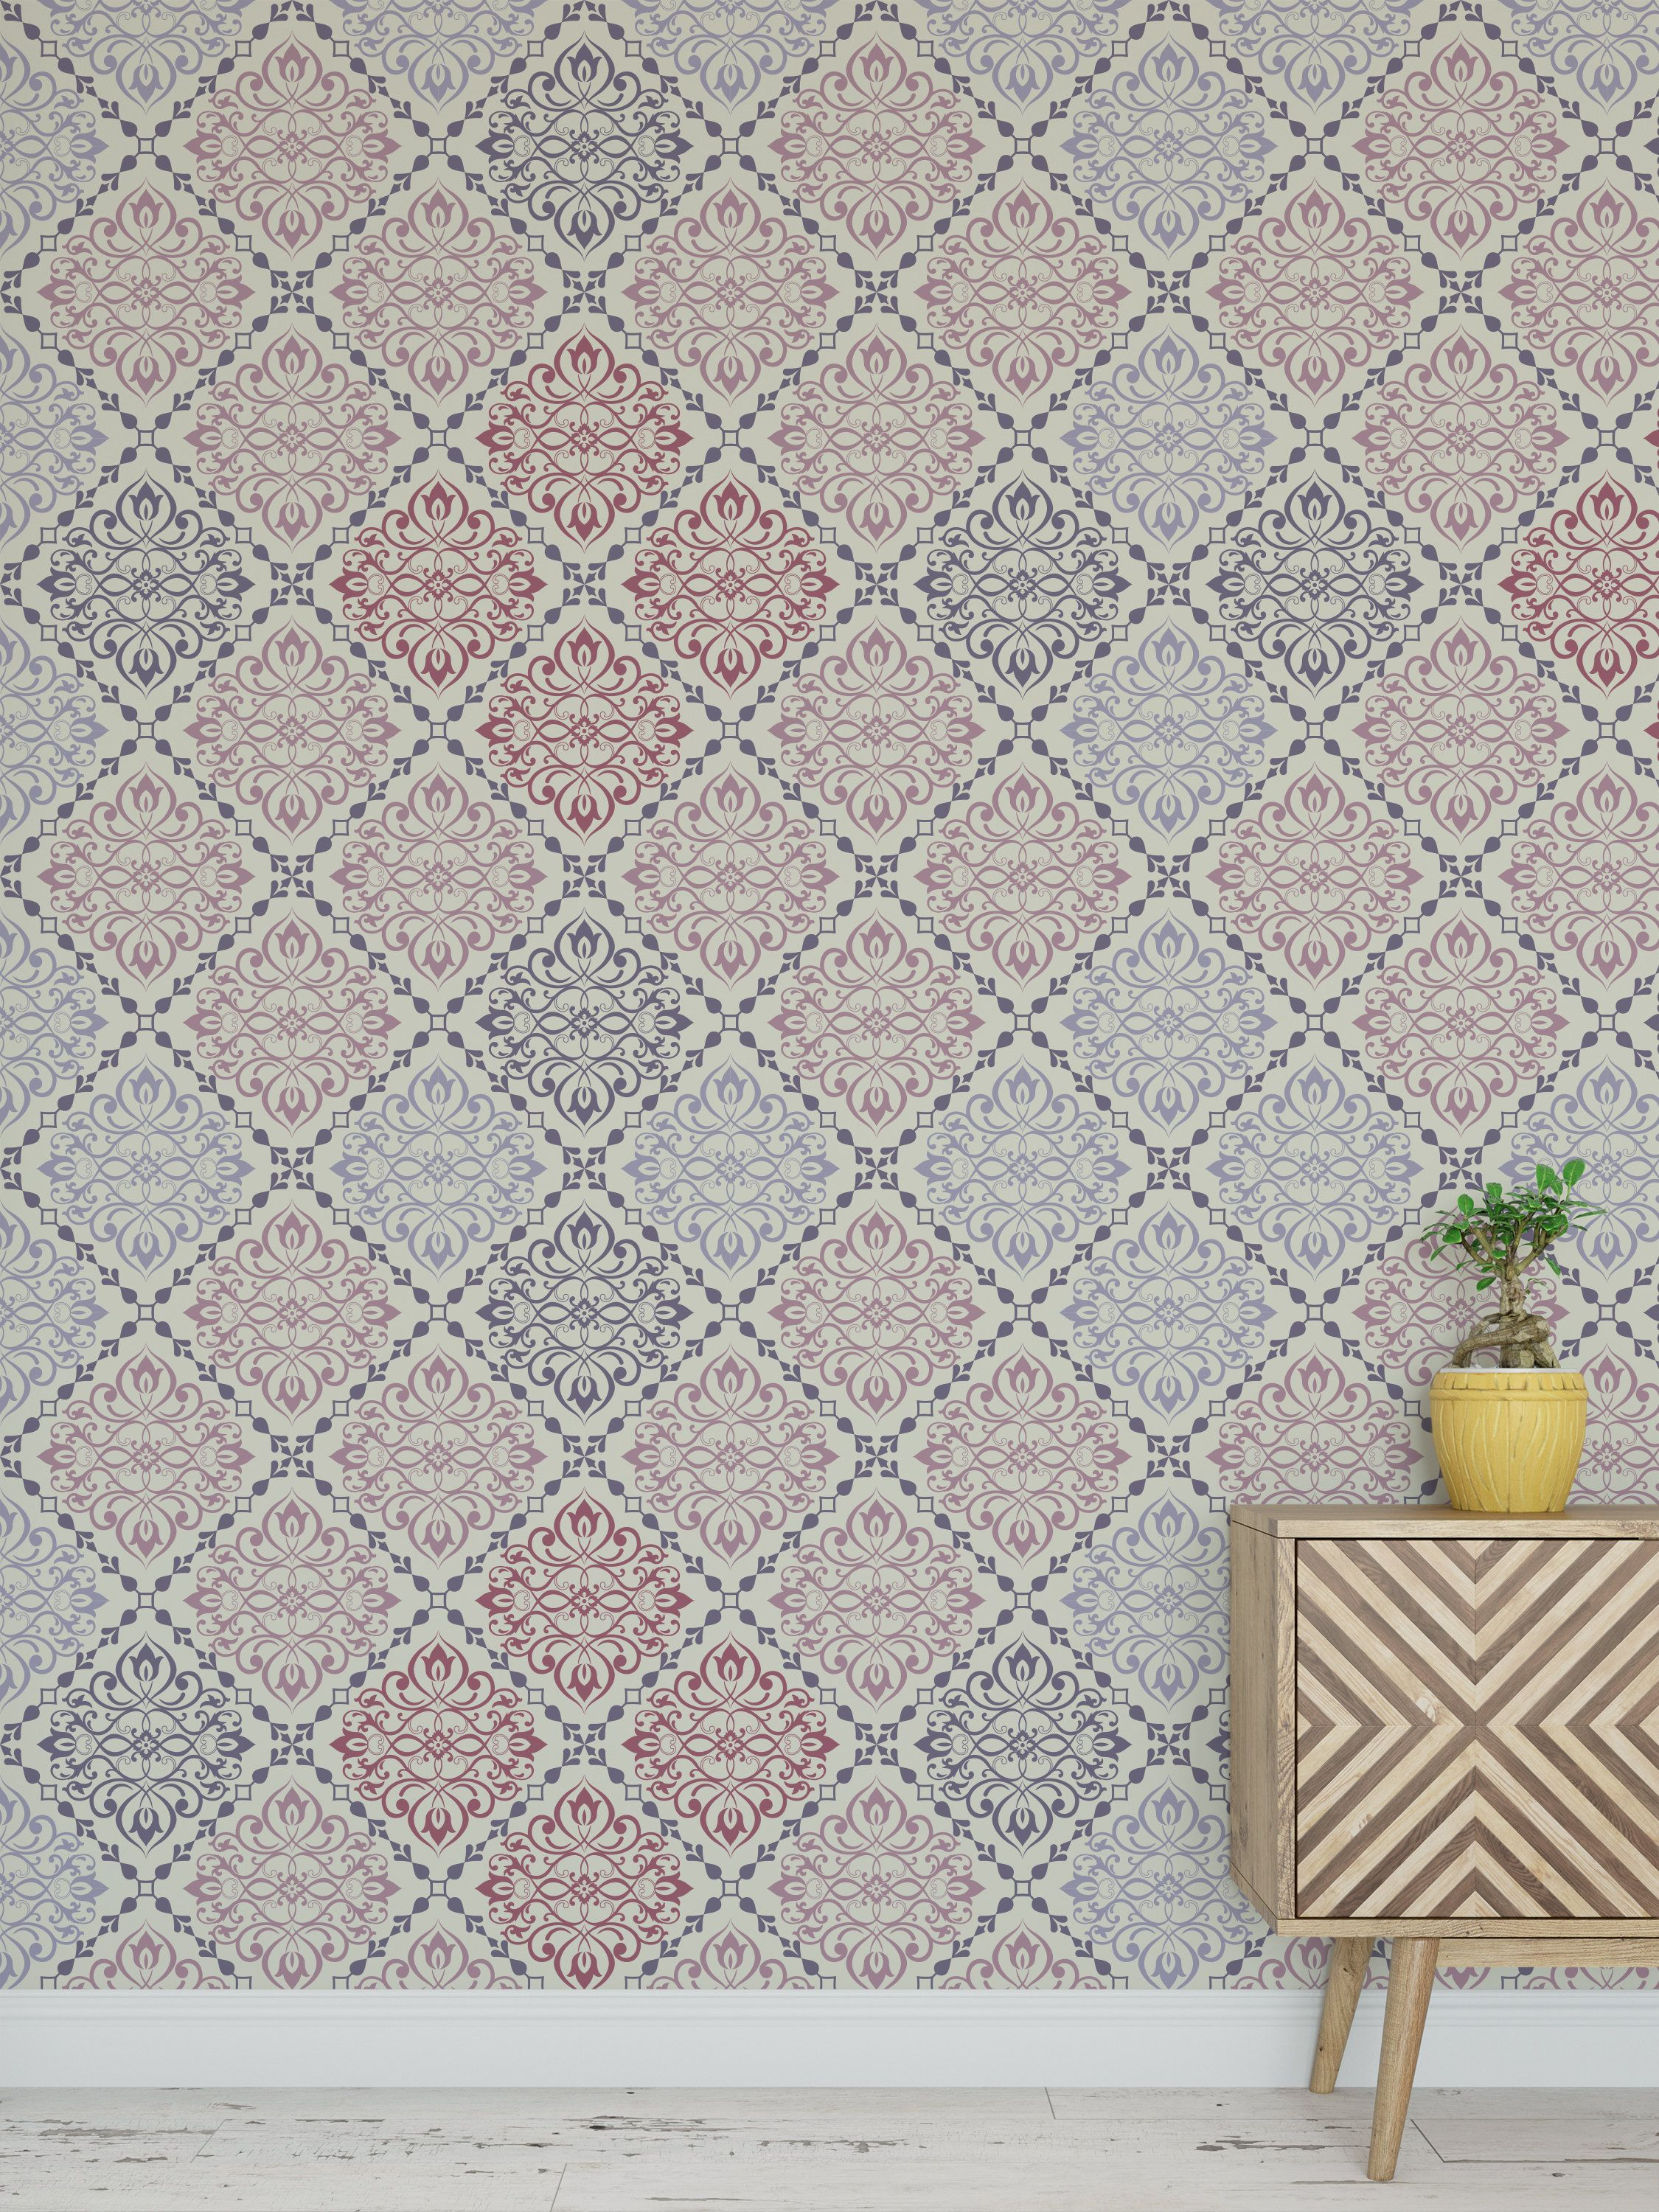 Removable Peel And Stick Wallpaper Blue Deco Geometric Etsy Blue Geometric Wallpaper Peel And Stick Wallpaper Geometric Wallpaper